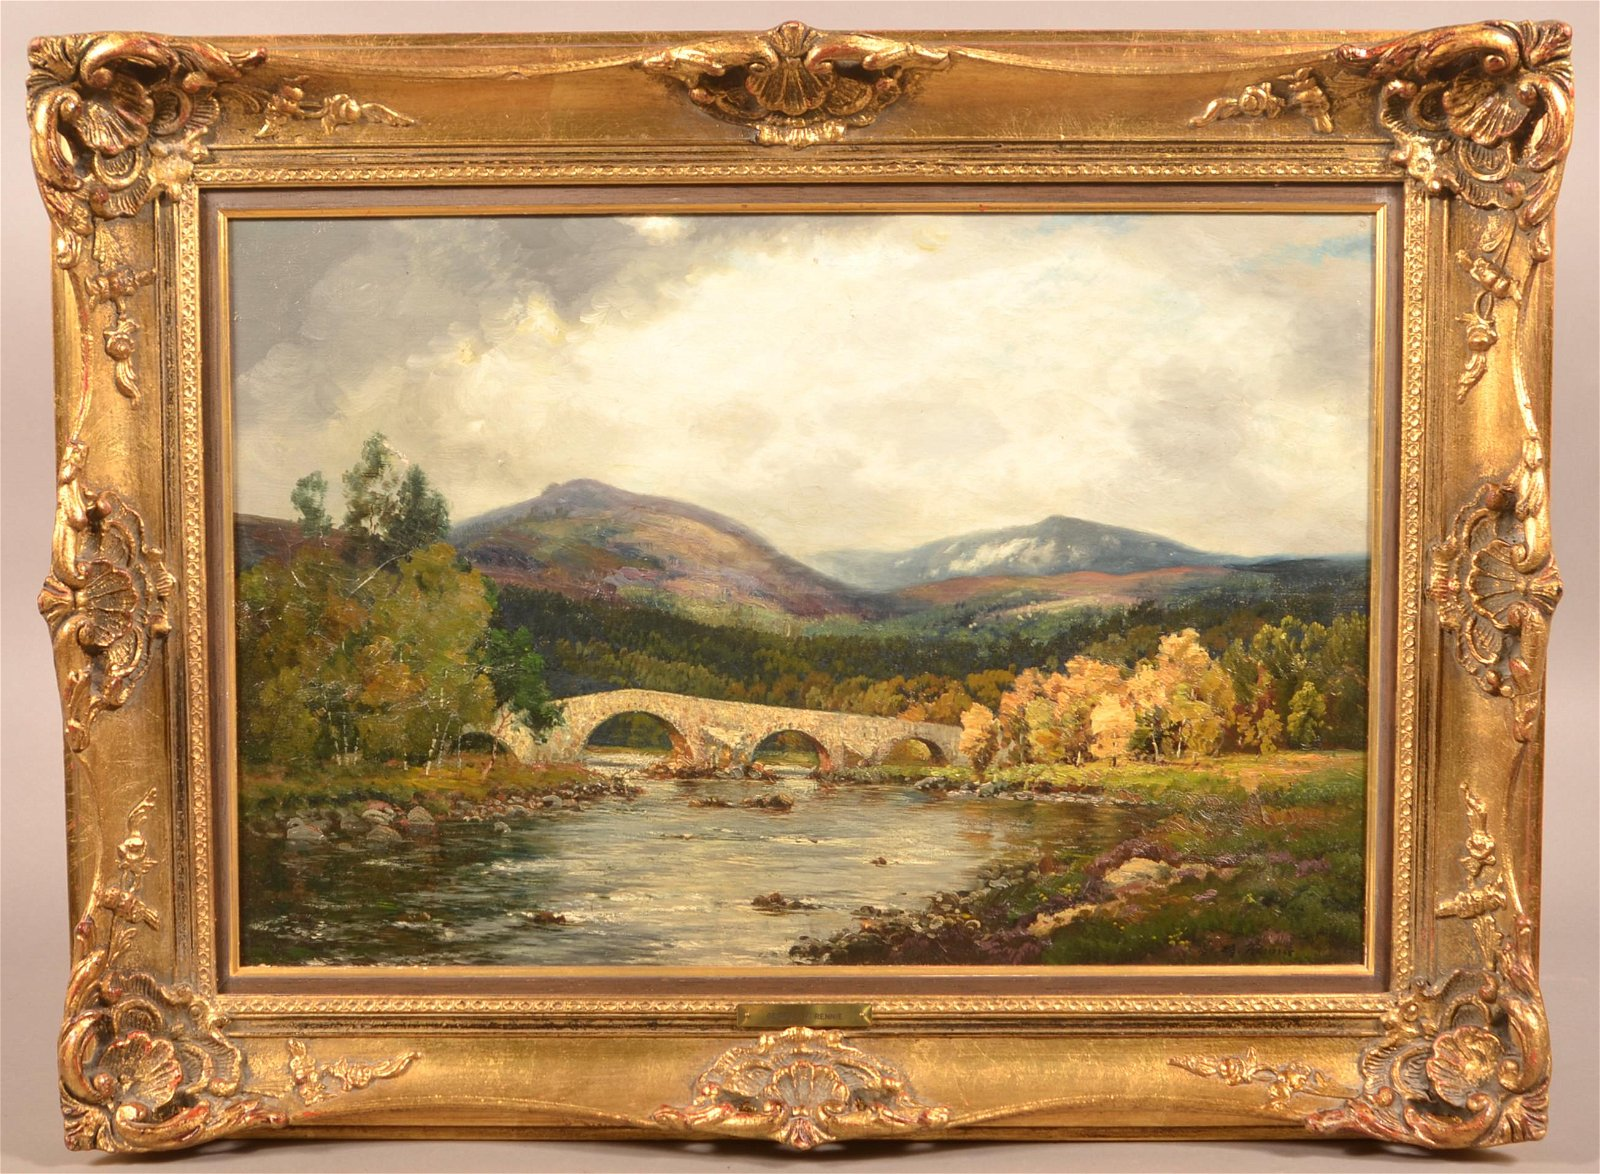 G.M. Rennie Oil on Canvas Landscape Painting.